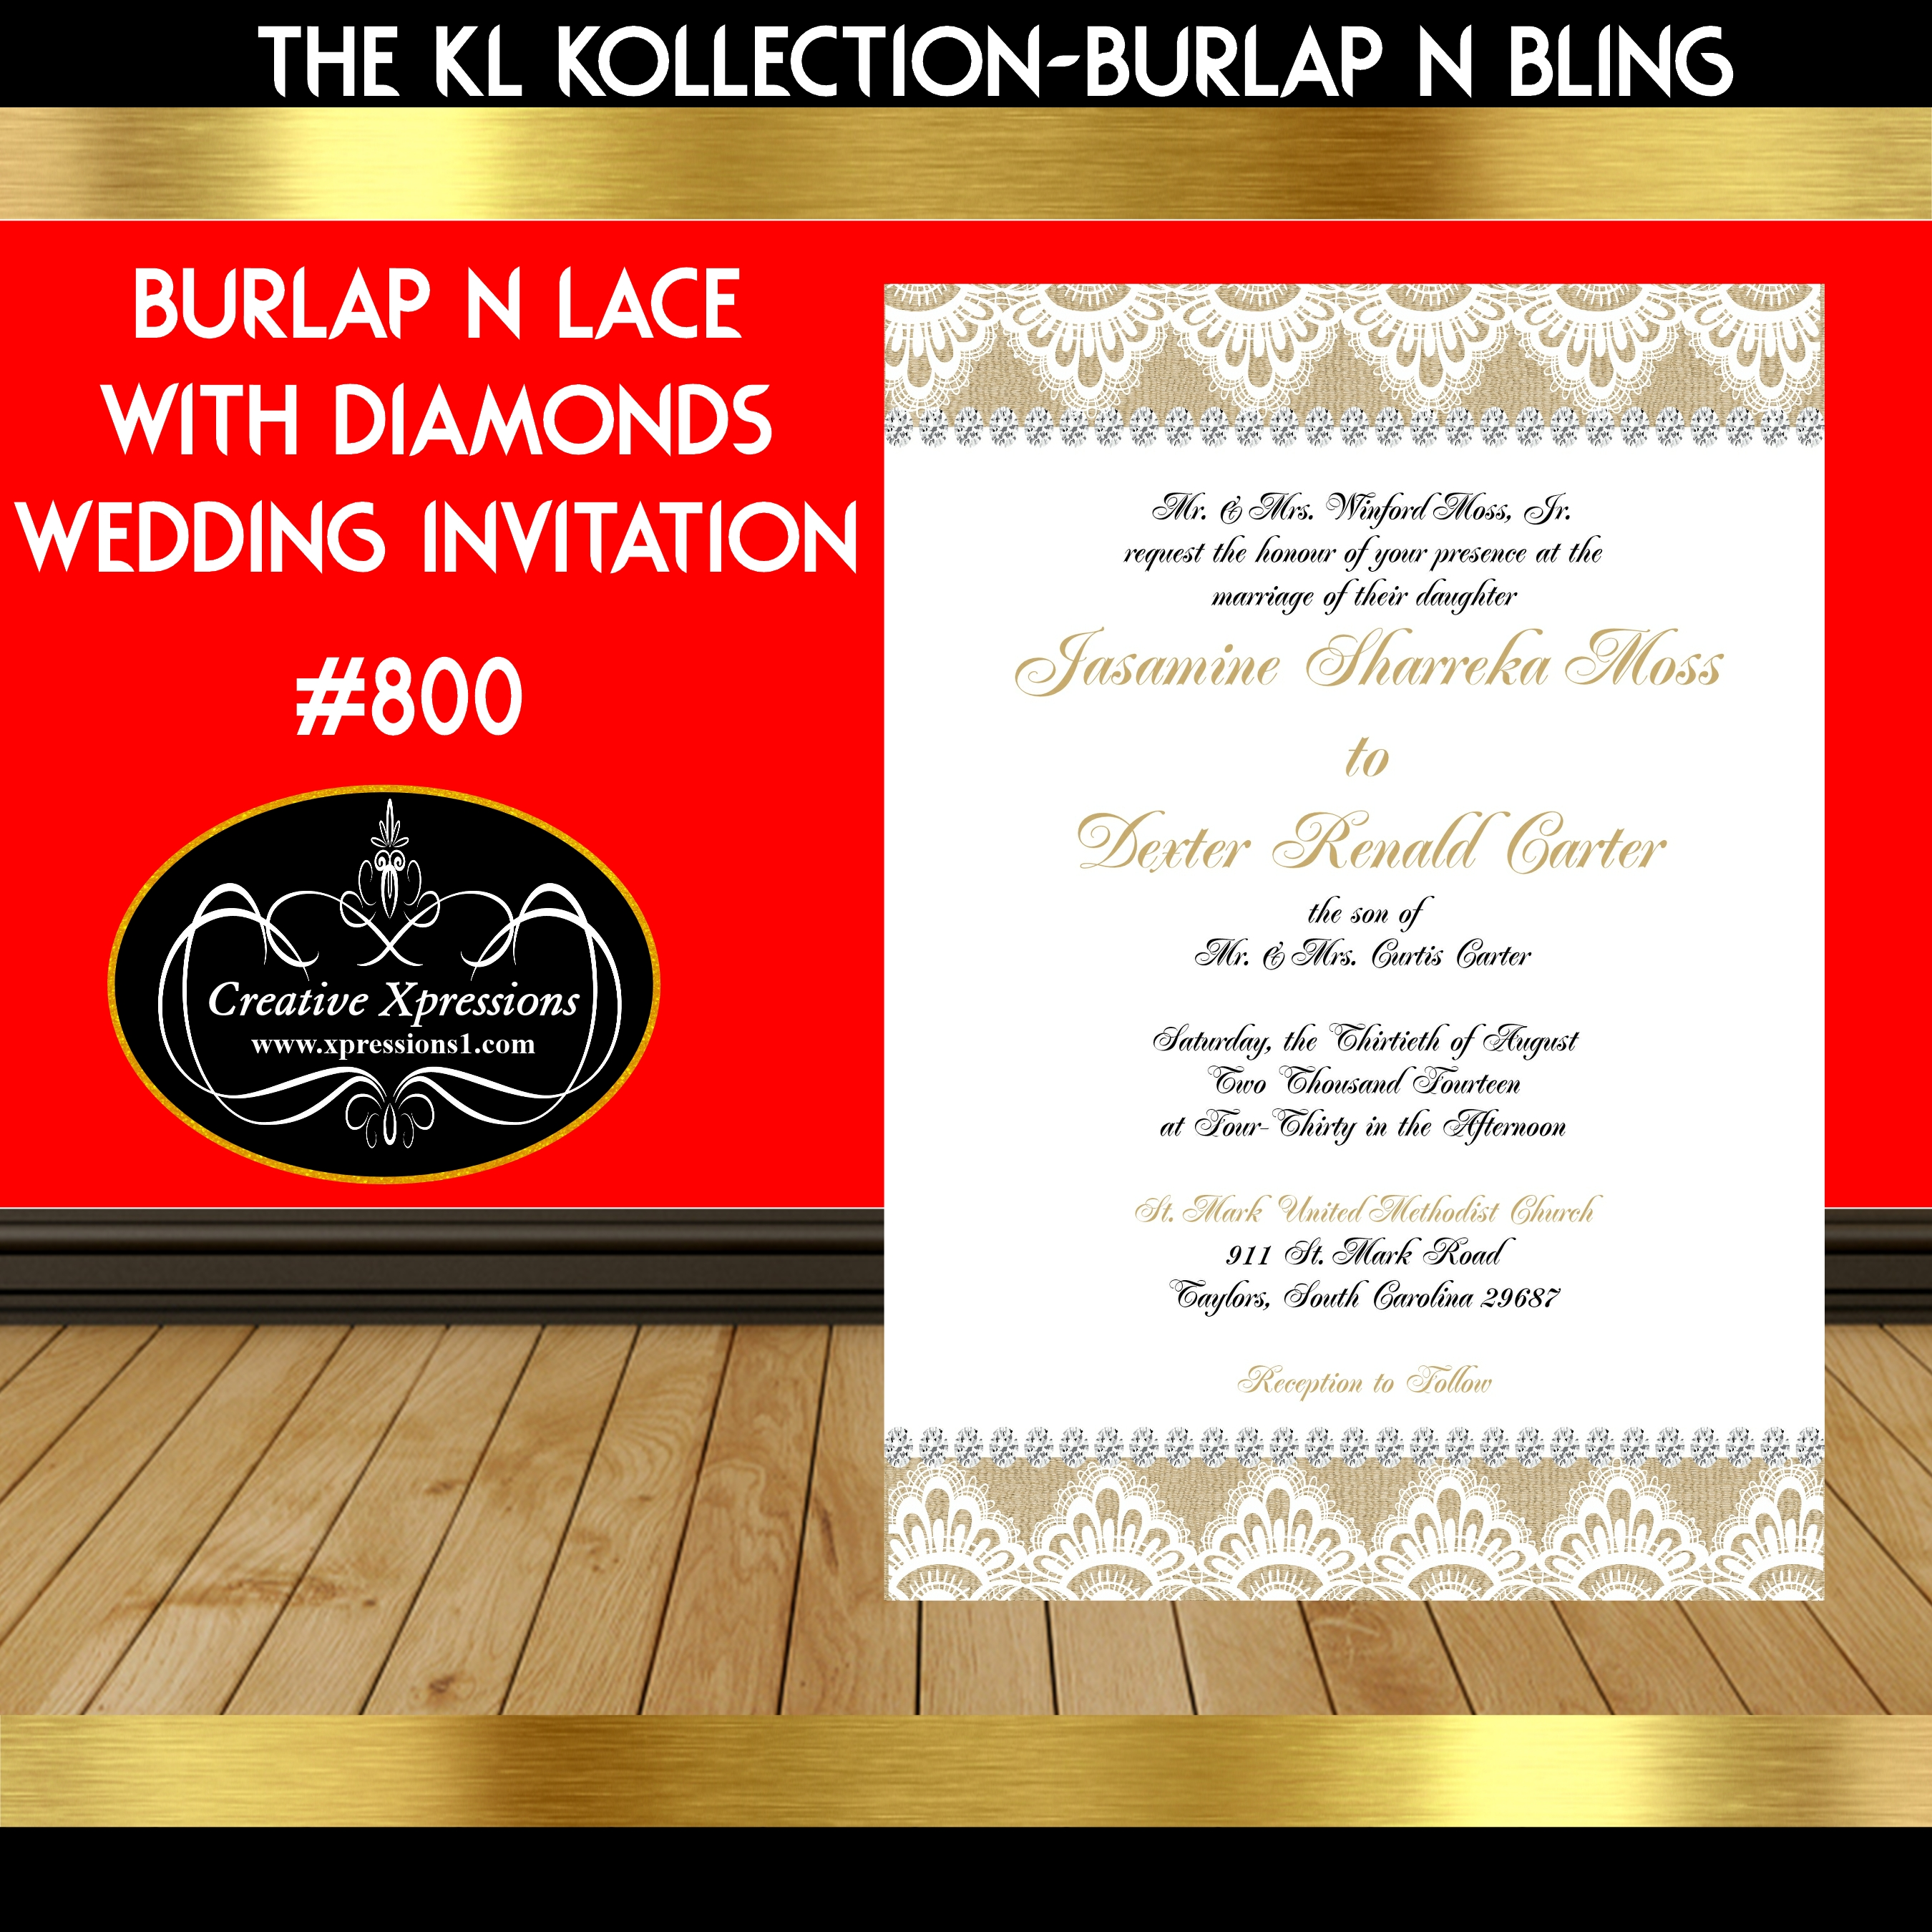 Burlap and Lace with Diamonds Wedding Invitation